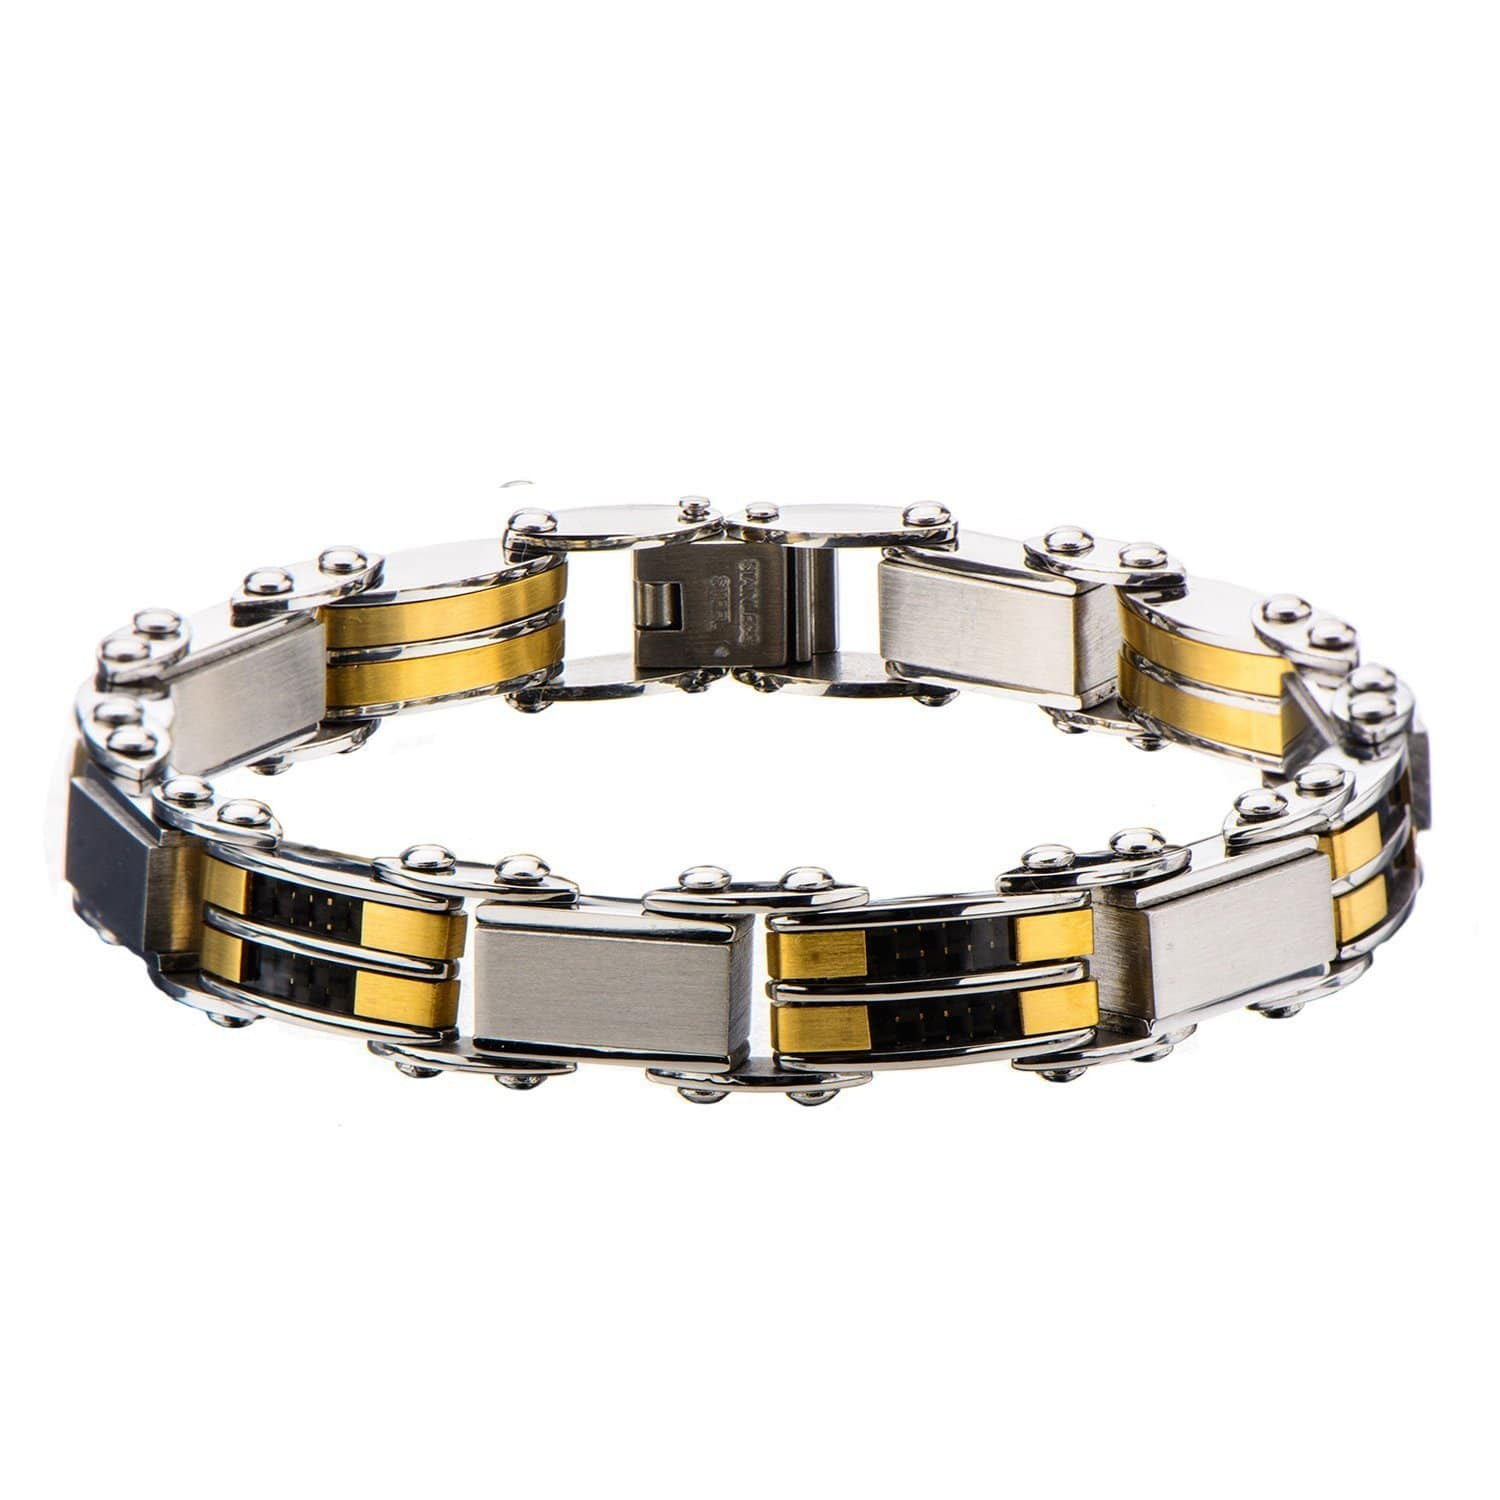 Gold & Silver Stainless Steel, Carbon Fiber Reversible Bracelet - Inox Jewelry India